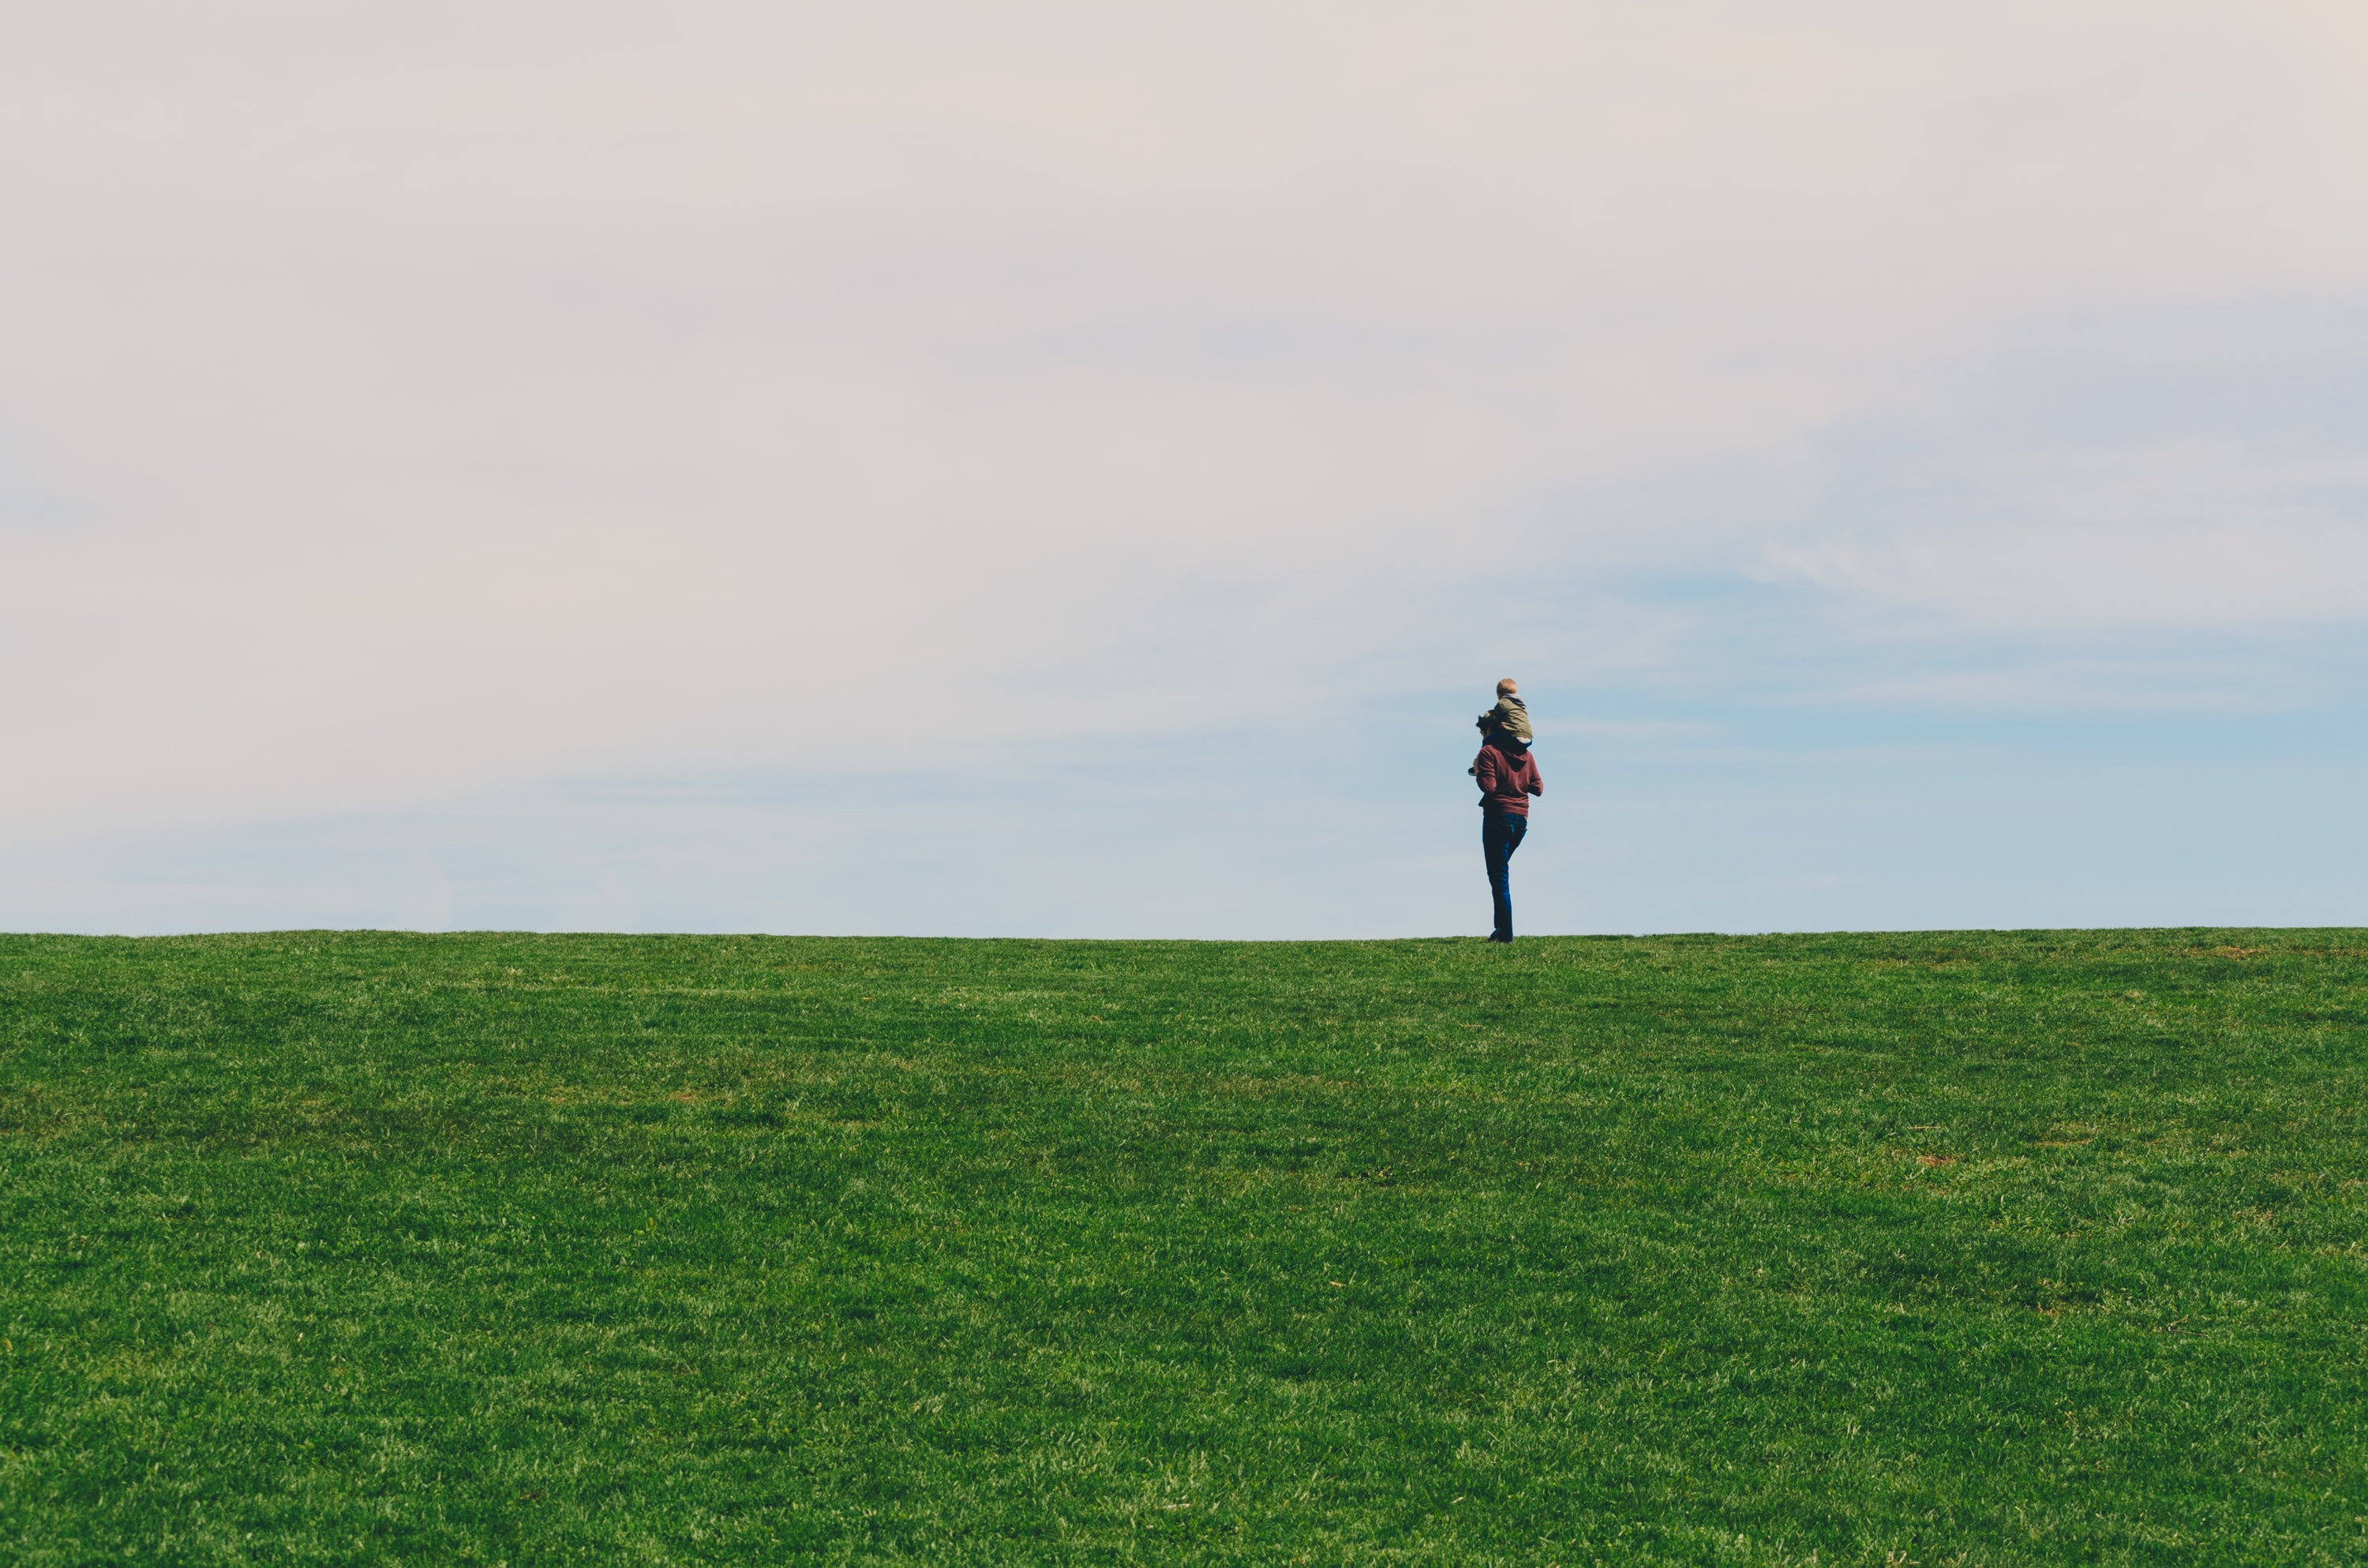 person standing on green grass field